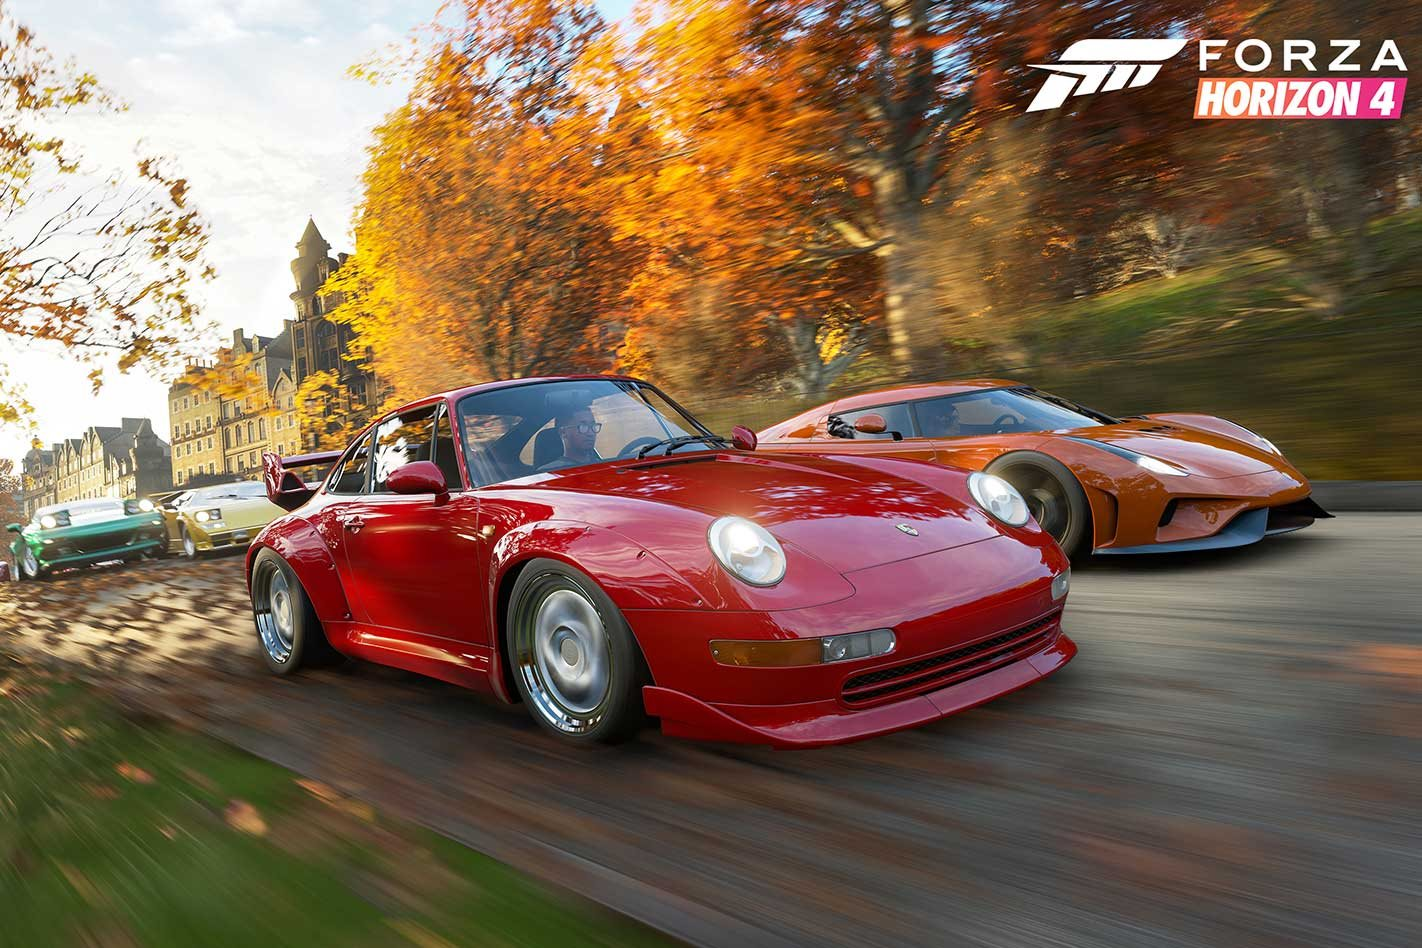 Forza Horizon 4 car list officially revealed